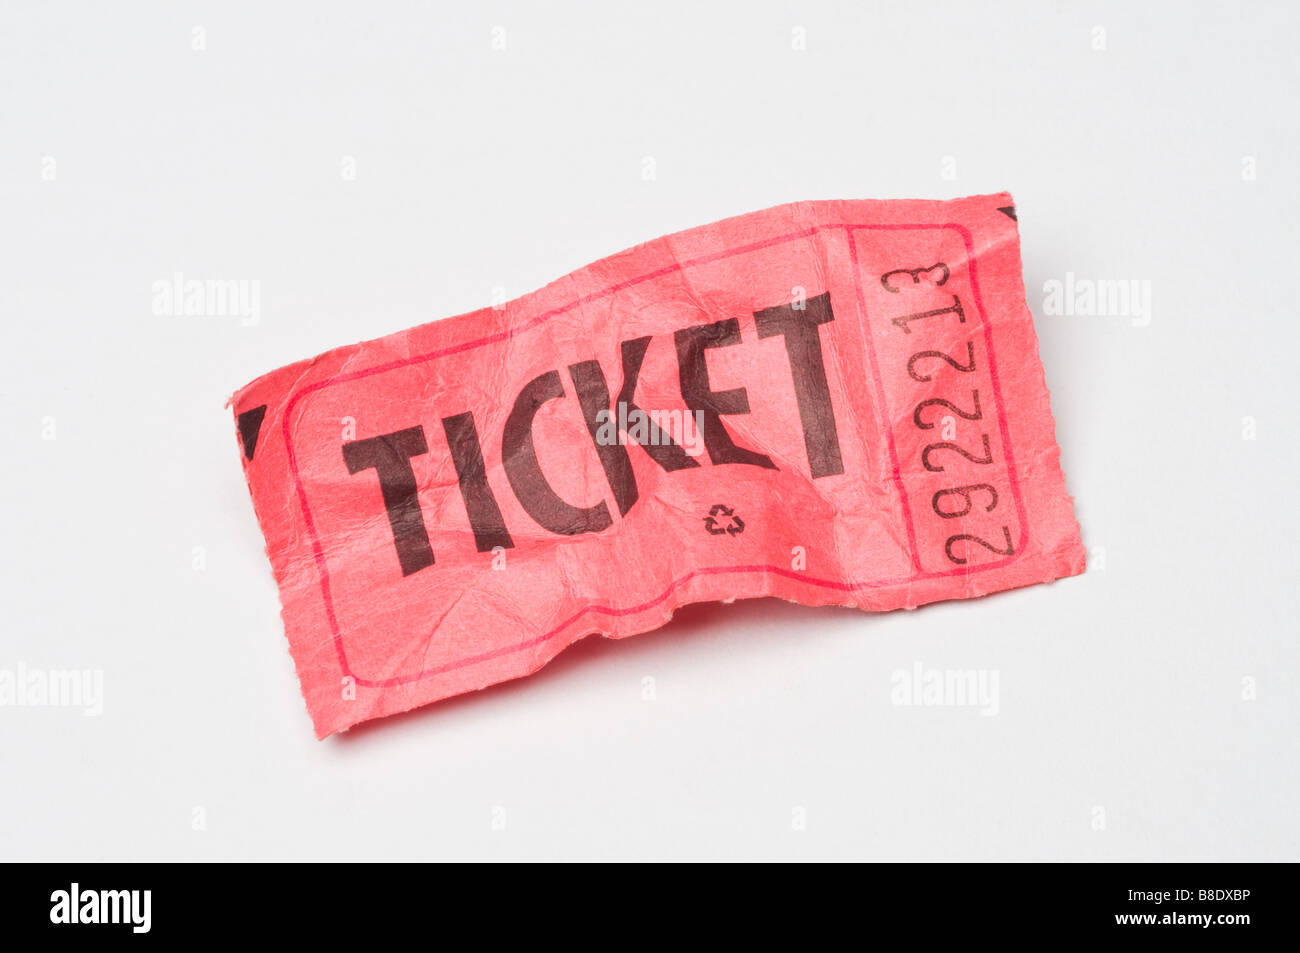 a crumpled red raffle ticket on white - Stock Image